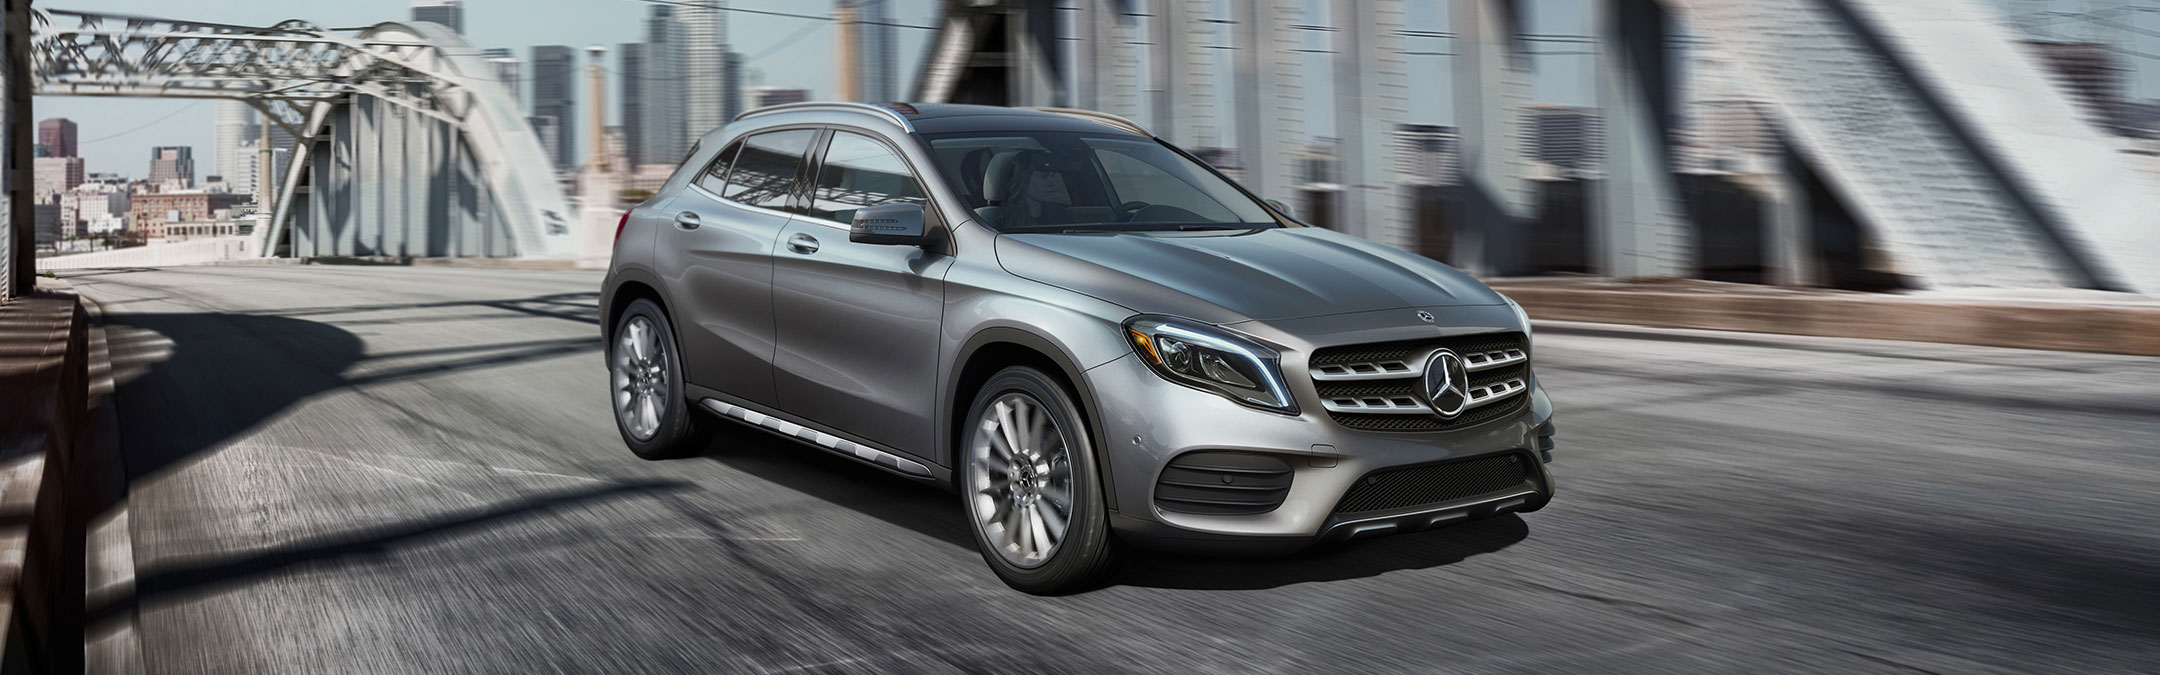 https://www.mercedes-benz.ca/content/dam/mb-nafta/ca/vehicles/class-gla/bodystyle-suv/Class/Non-AMG/1.%20Story%201/I.%20Design%20Hero/MBCAN-2018-GLA-SUV-CATEGORY-HERO-1-1-DR.jpg